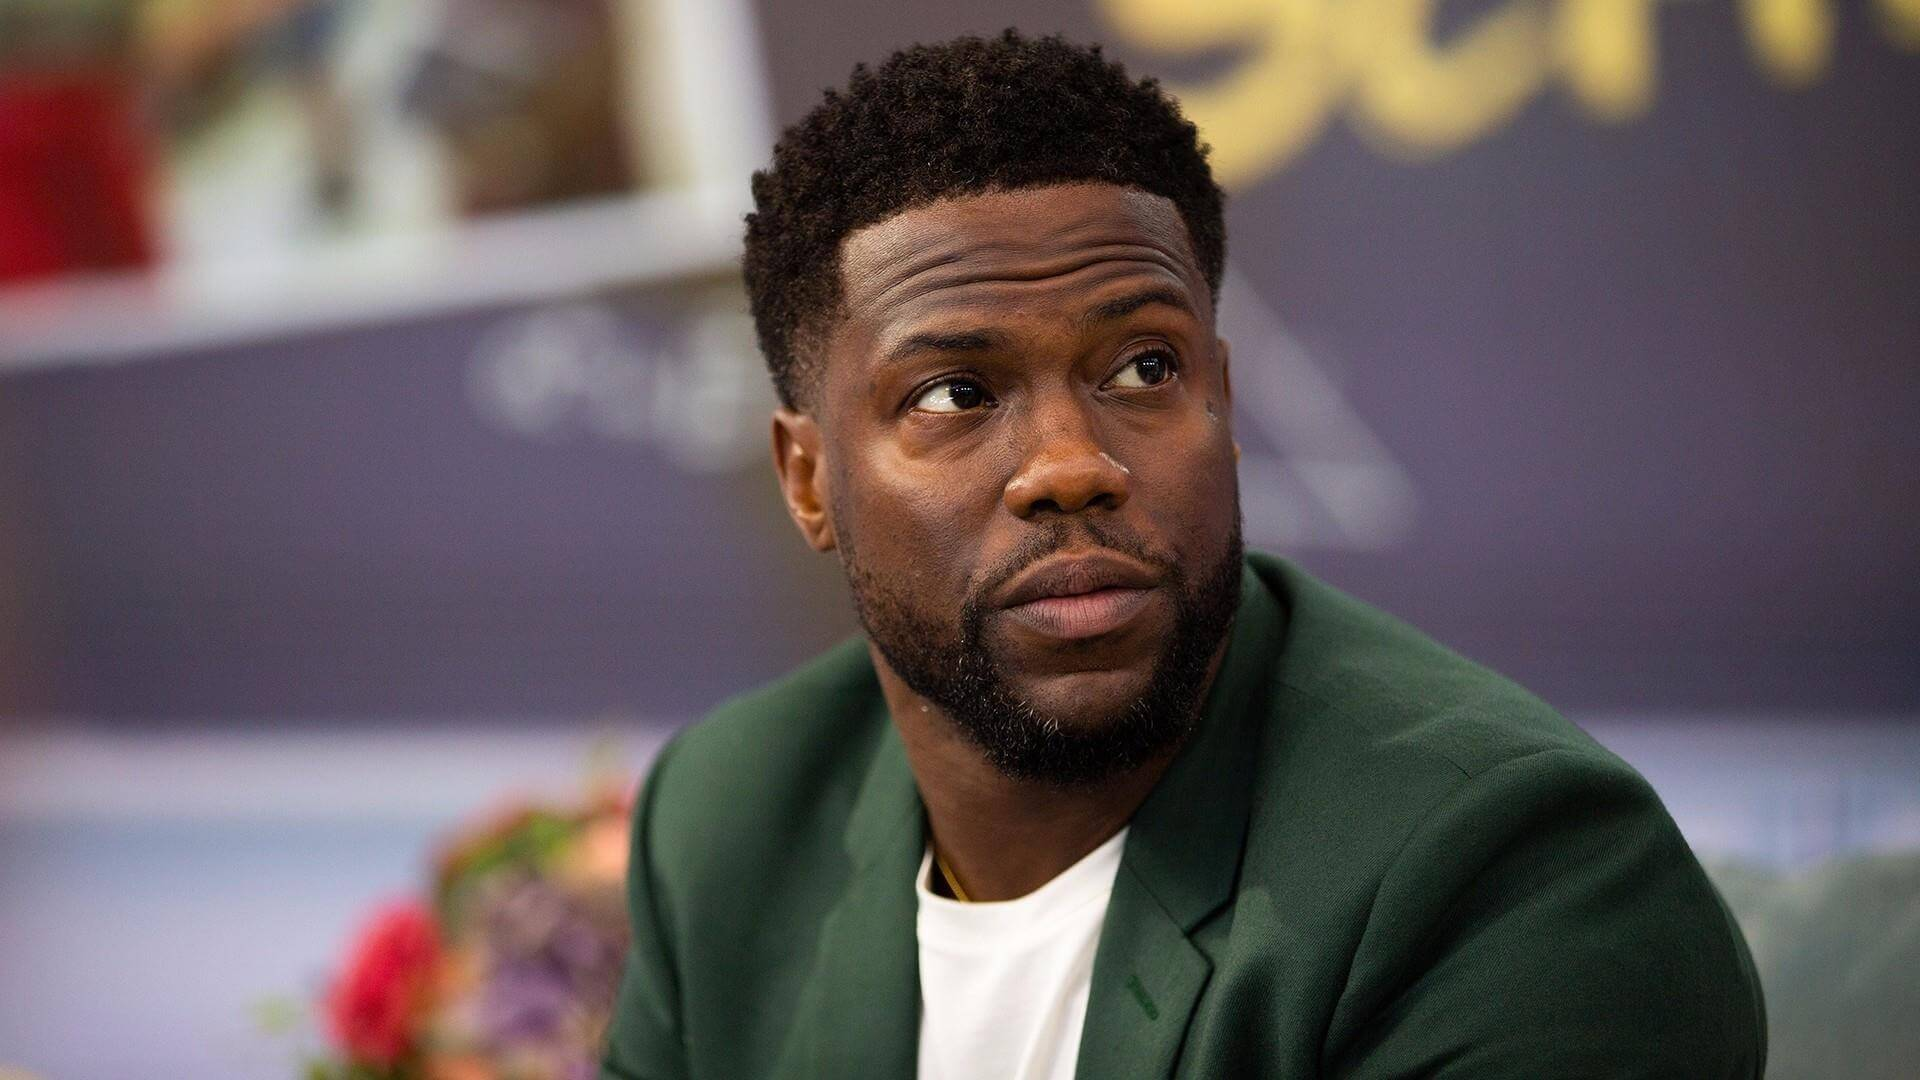 Kevin Hart was involved in a car accident in 2019